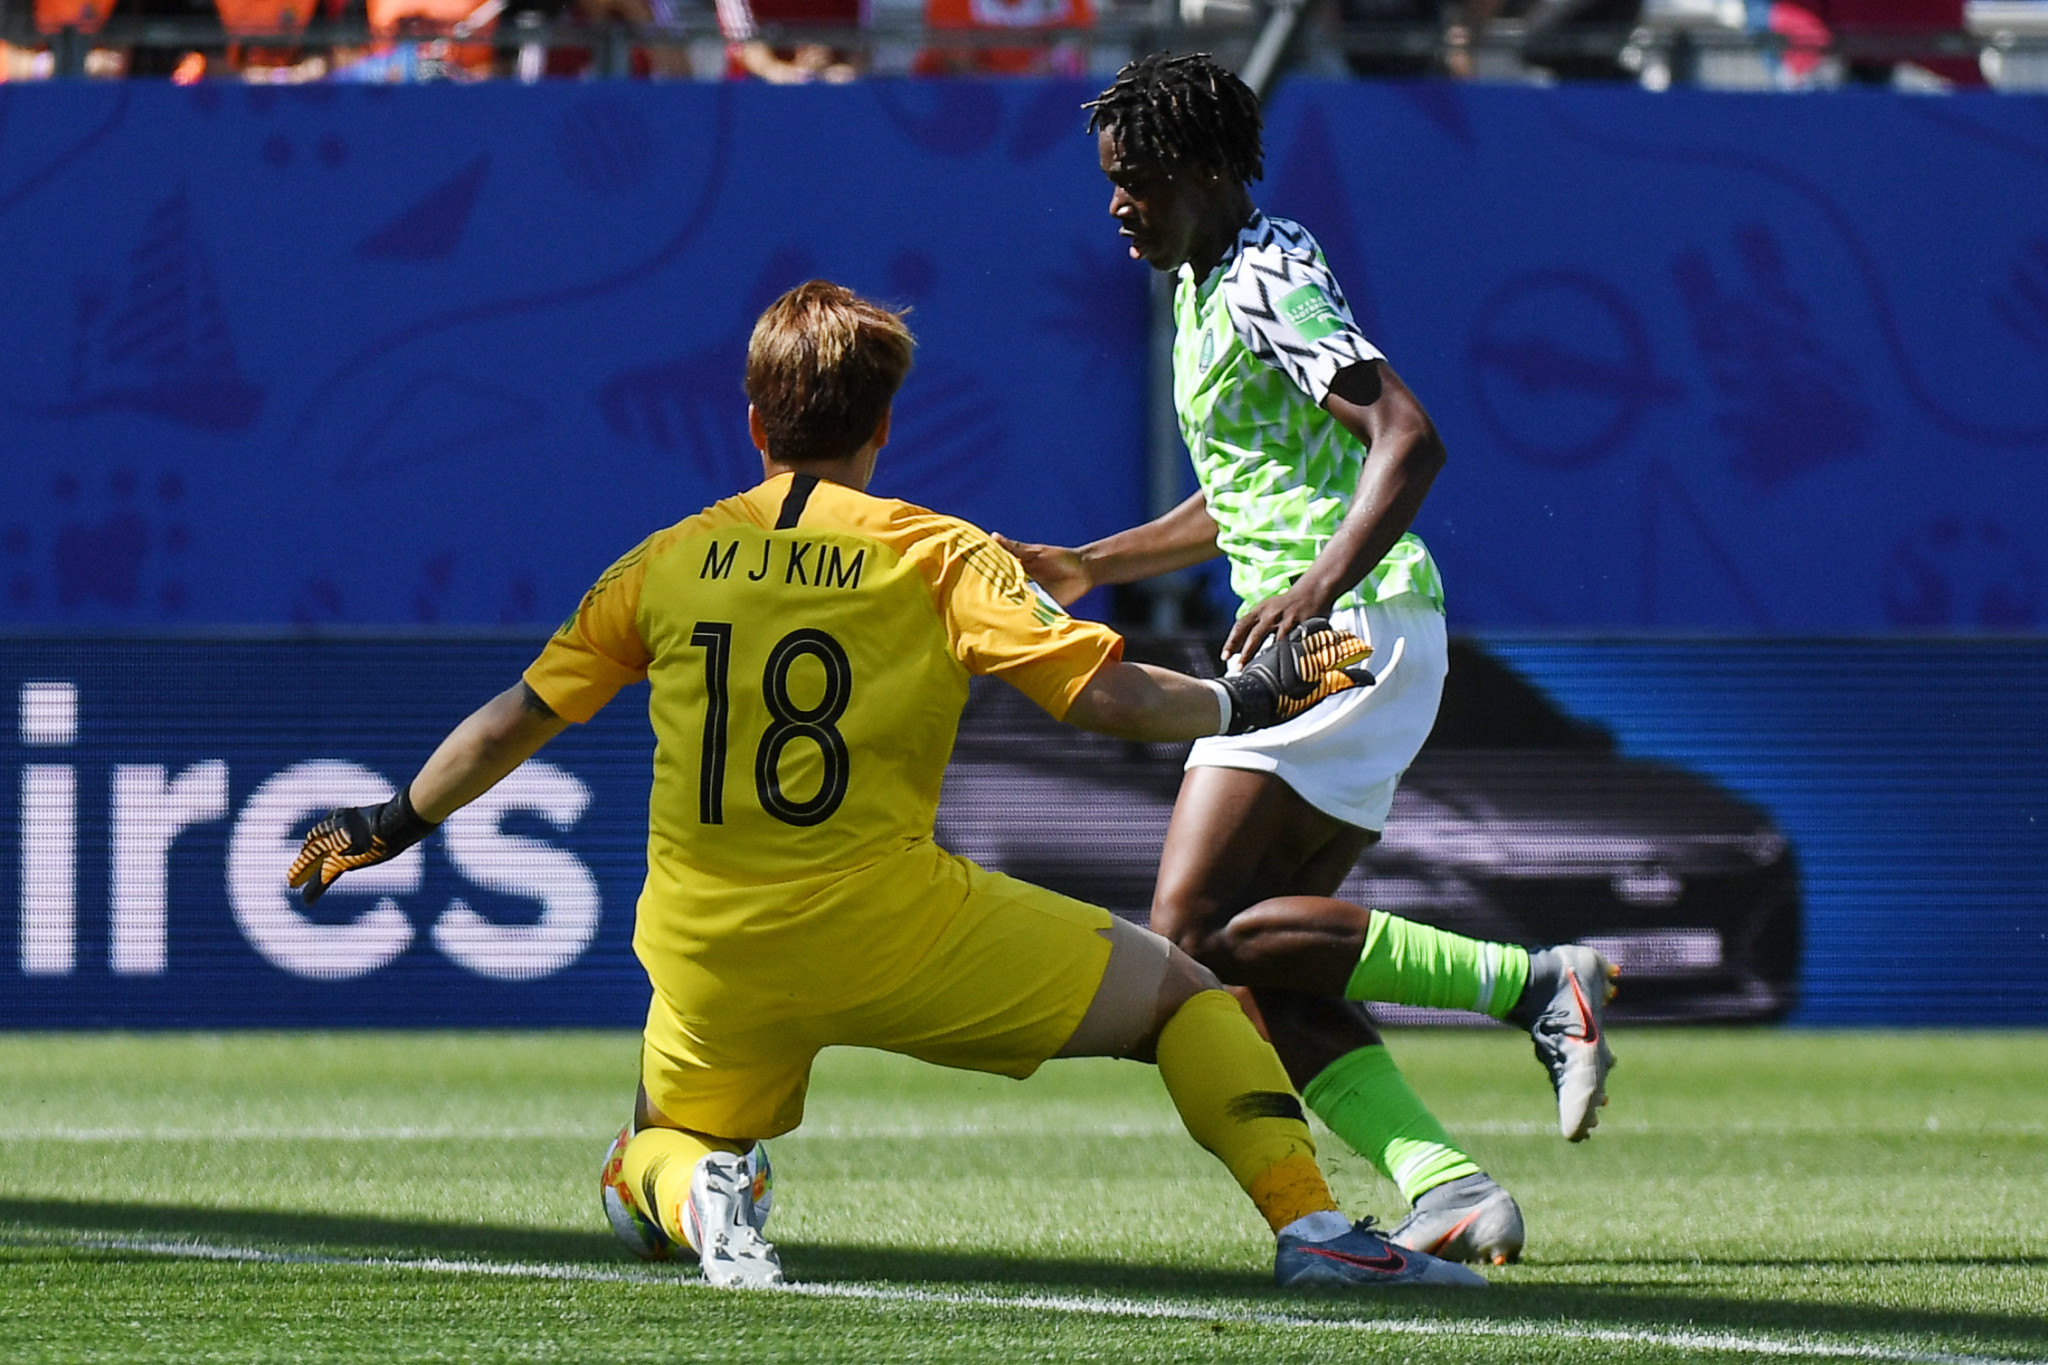 Asisat Oshoala then scored, with Nigeria winning 2-0 ©Getty Images